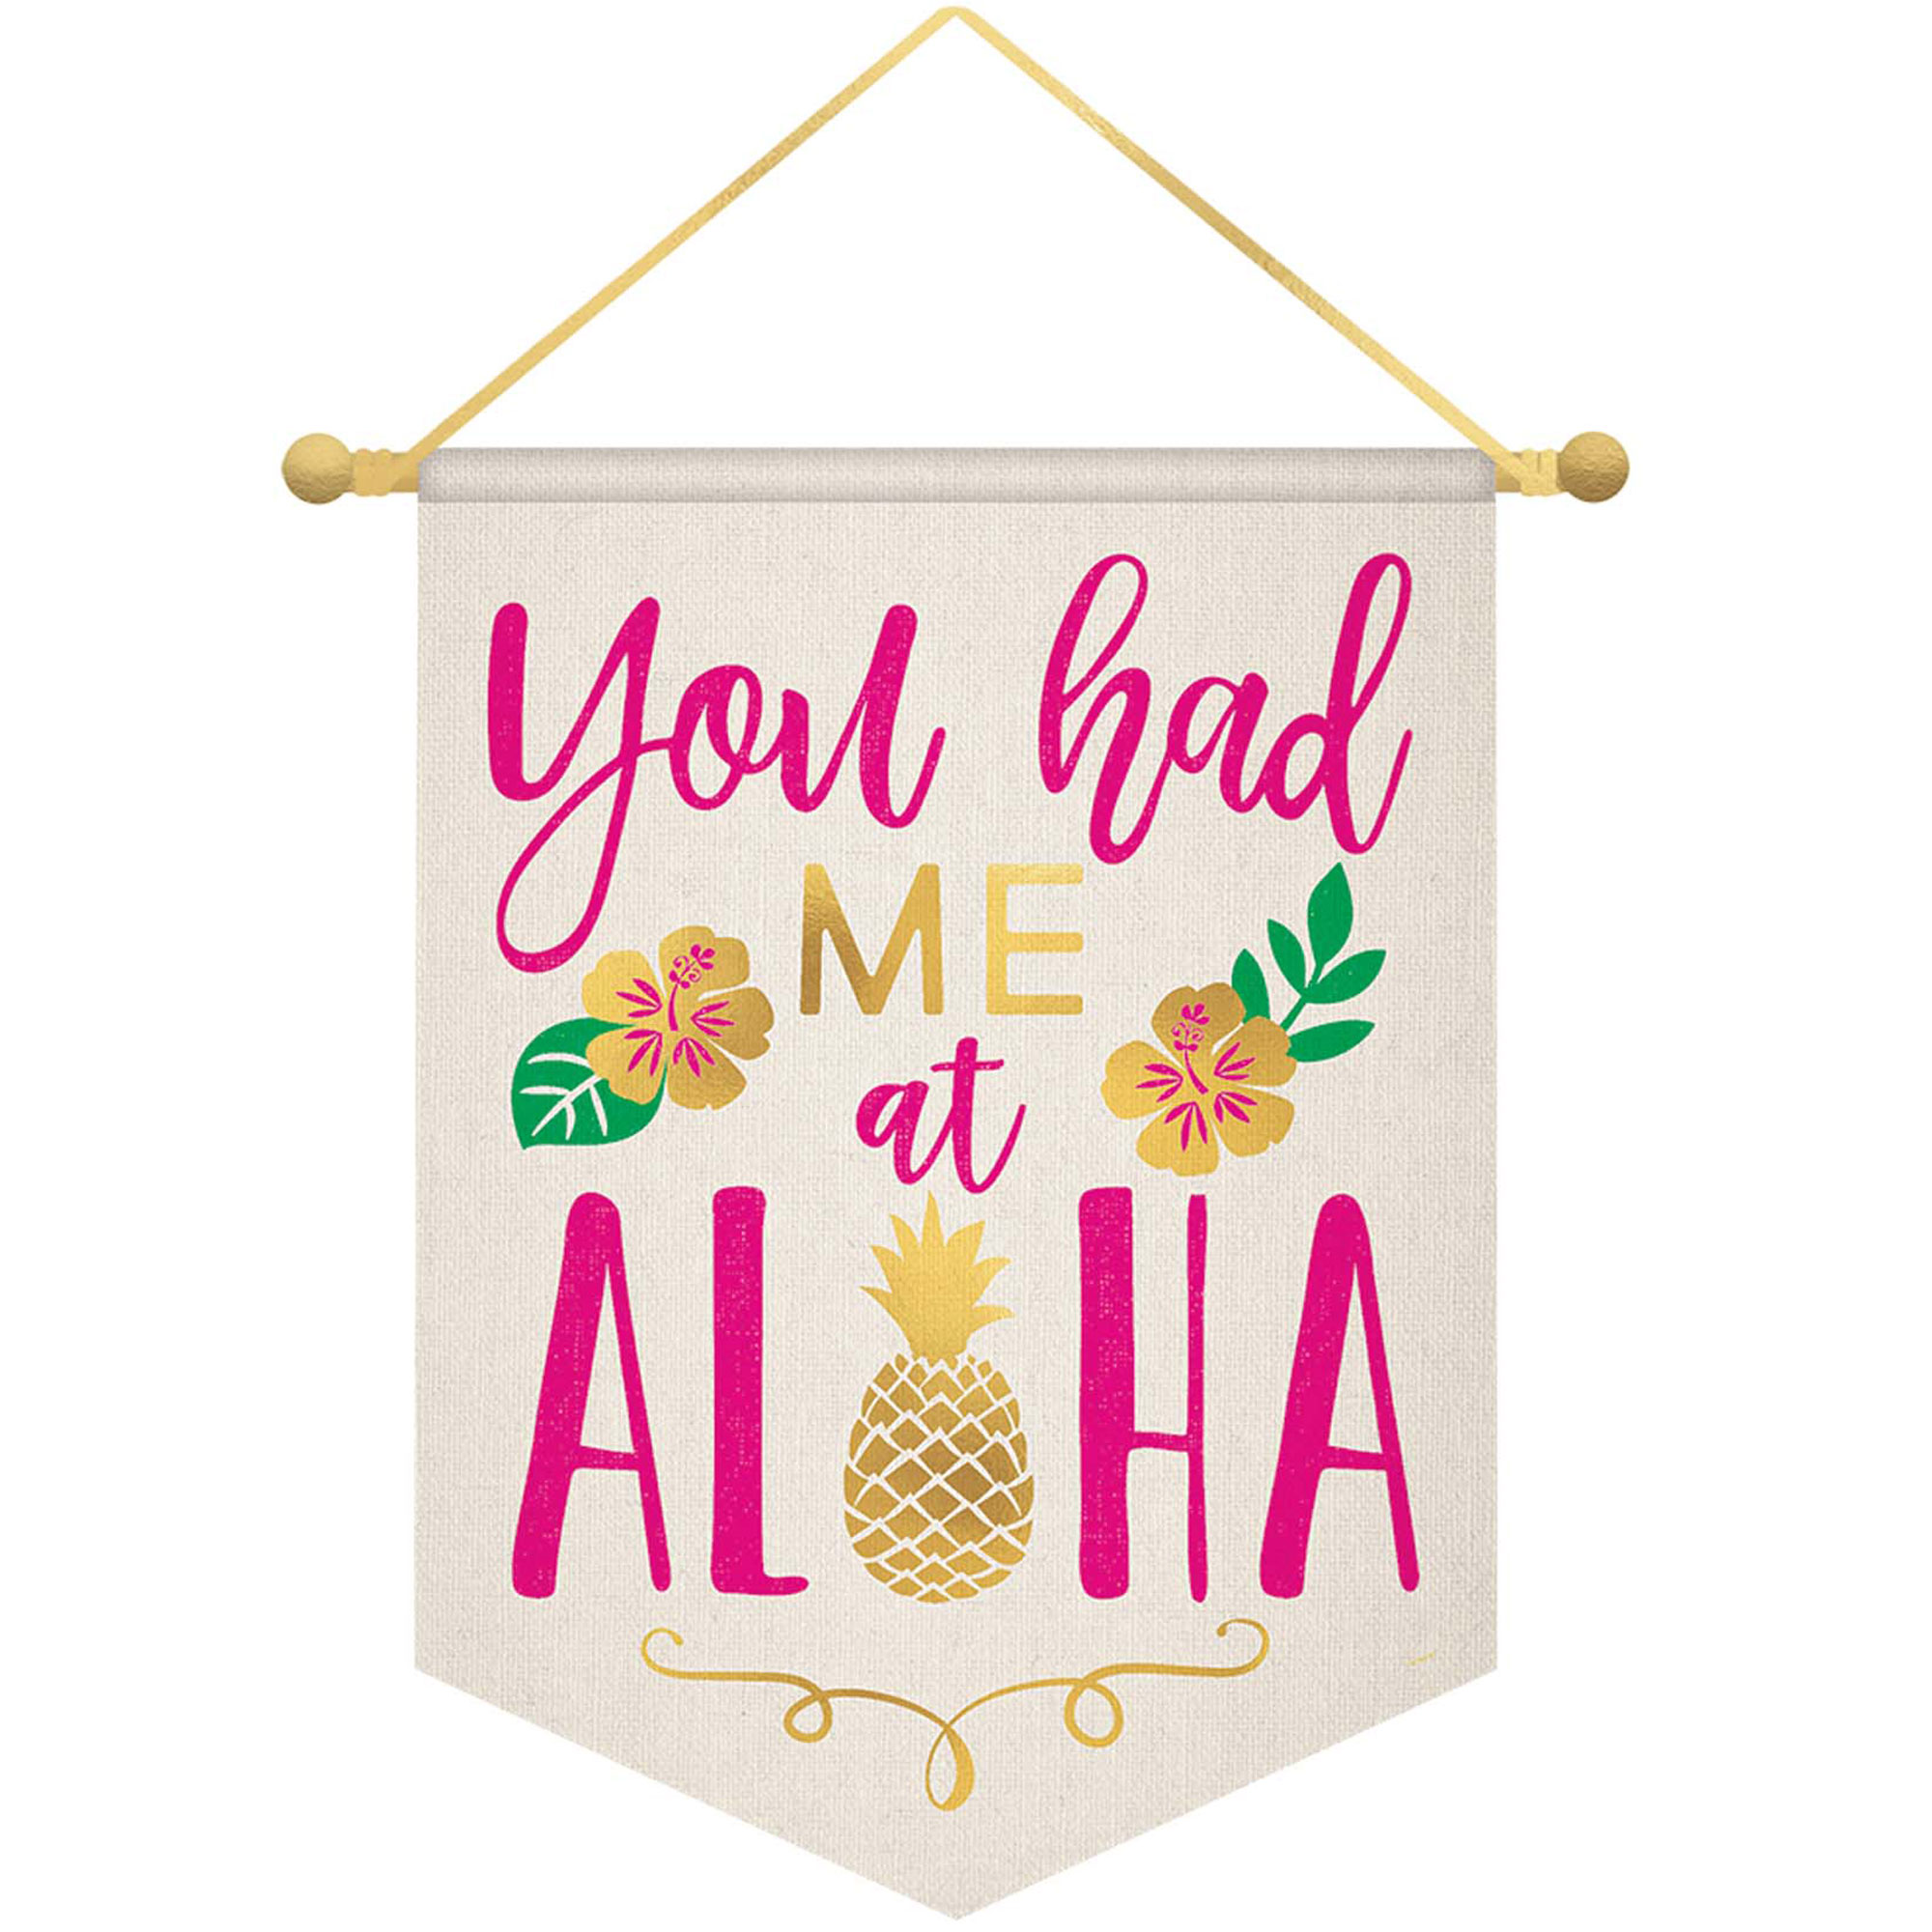 You Had Me At Aloha Banner Canvas with Rope Hanger.